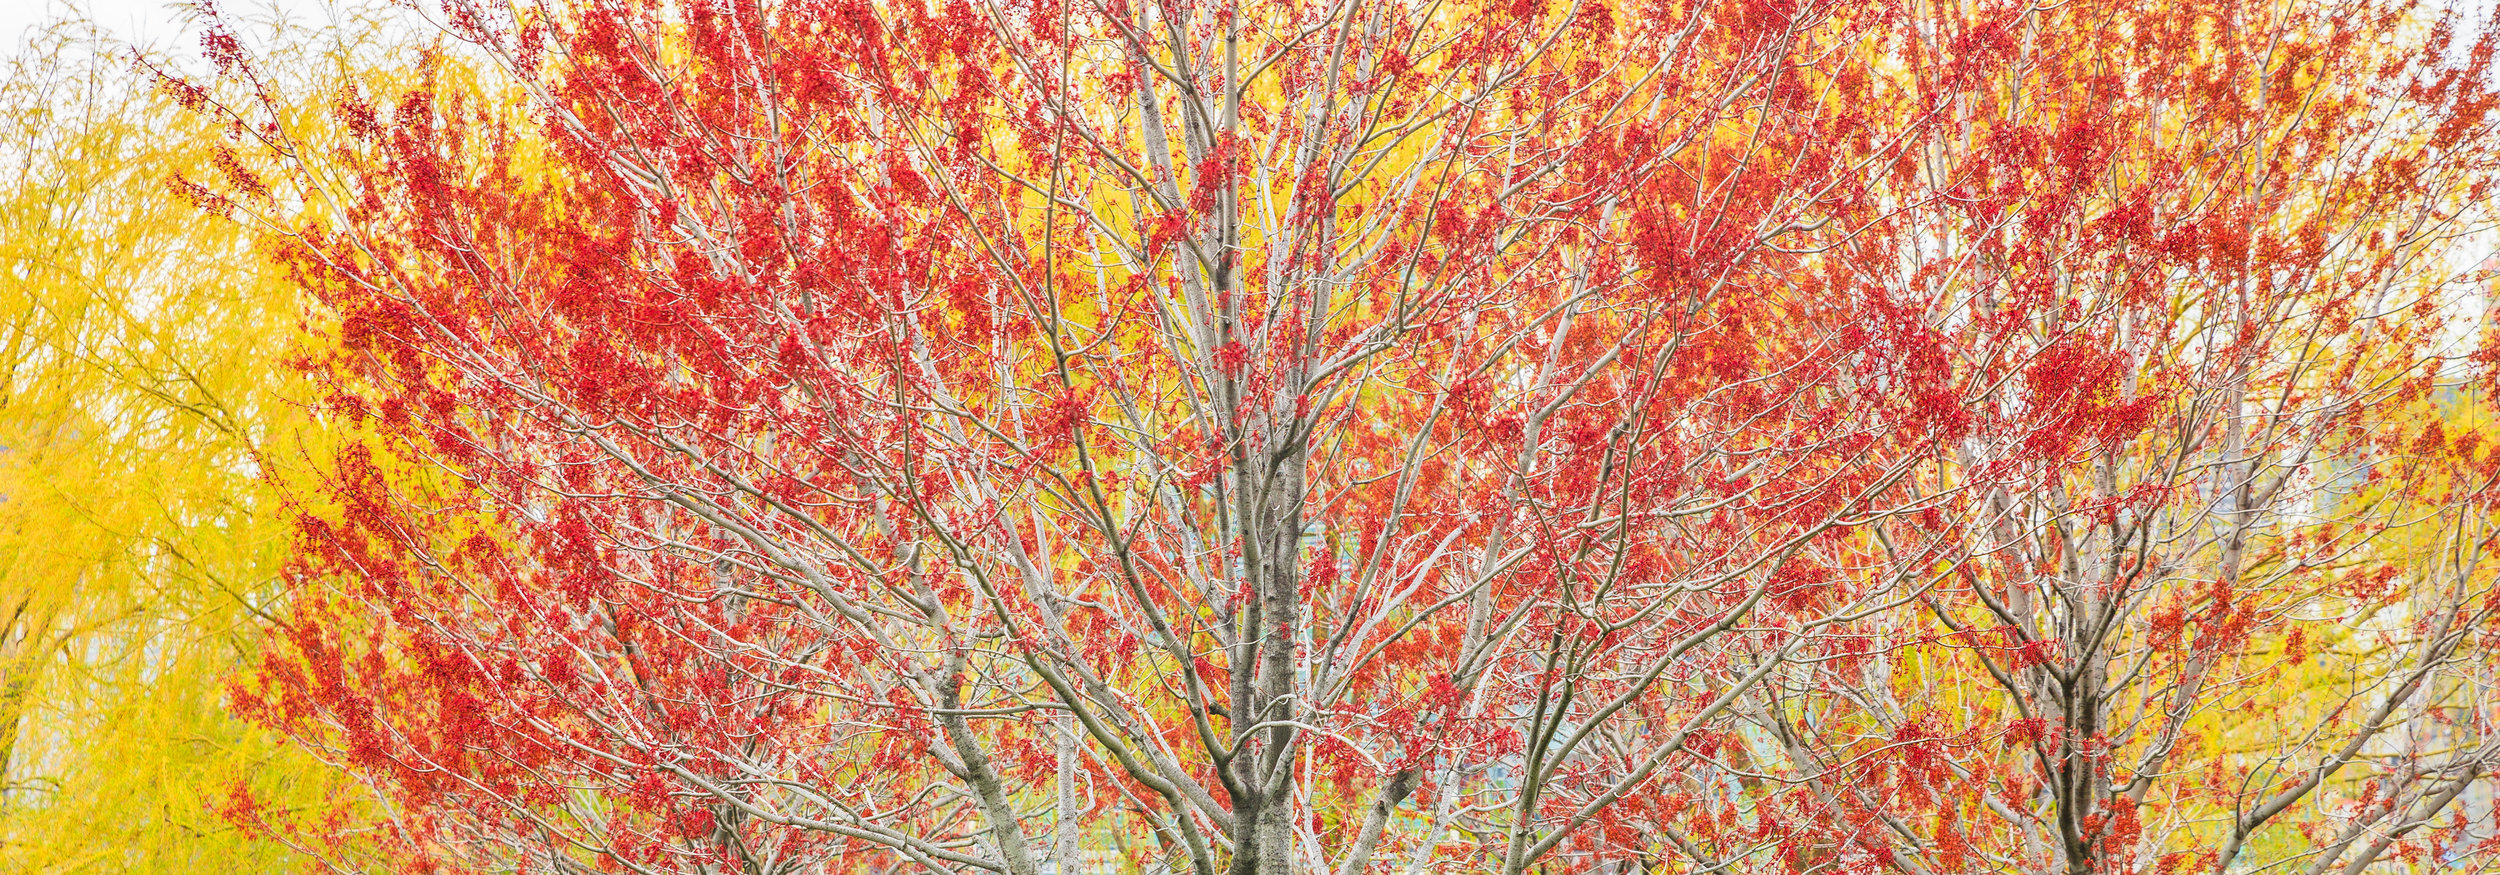 Red and yellow dominate this panoramic photograph of trees in New York. The fall season is in full swing and the trees are both full with leaves and full of color.